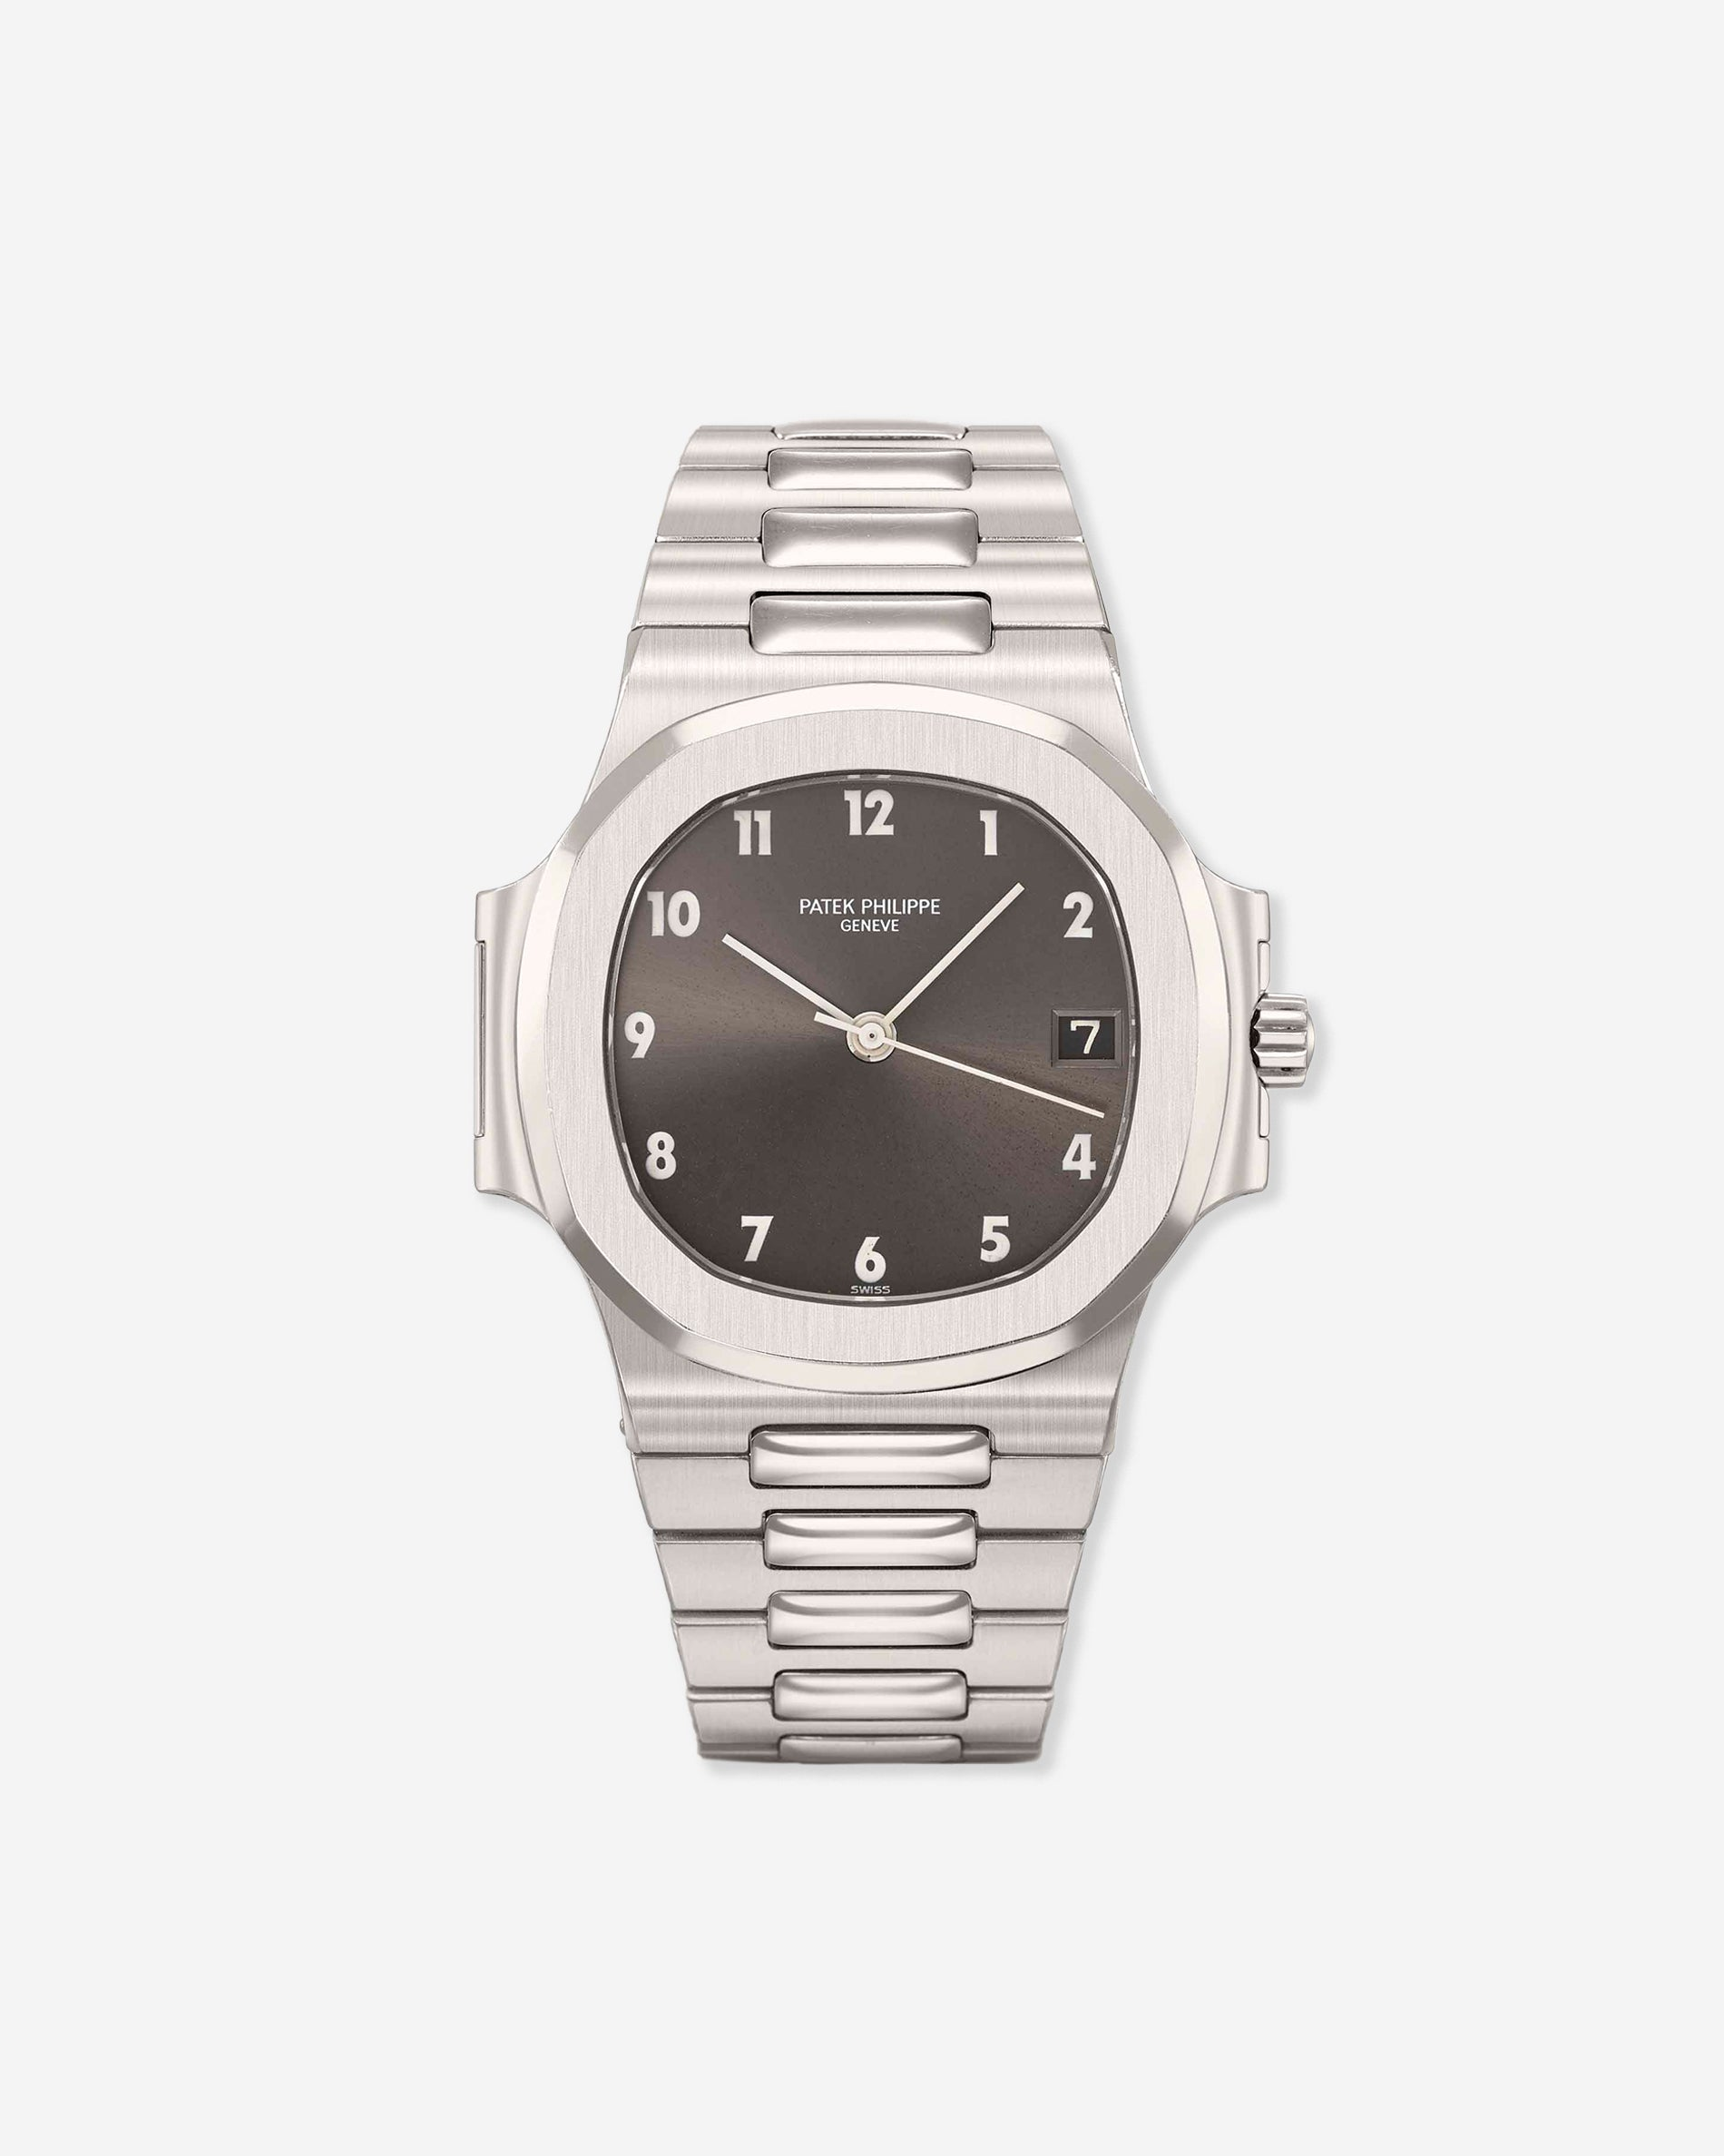 Patek Philippe Nautilus 3800 with a rare telephone dial from A Collected Man London